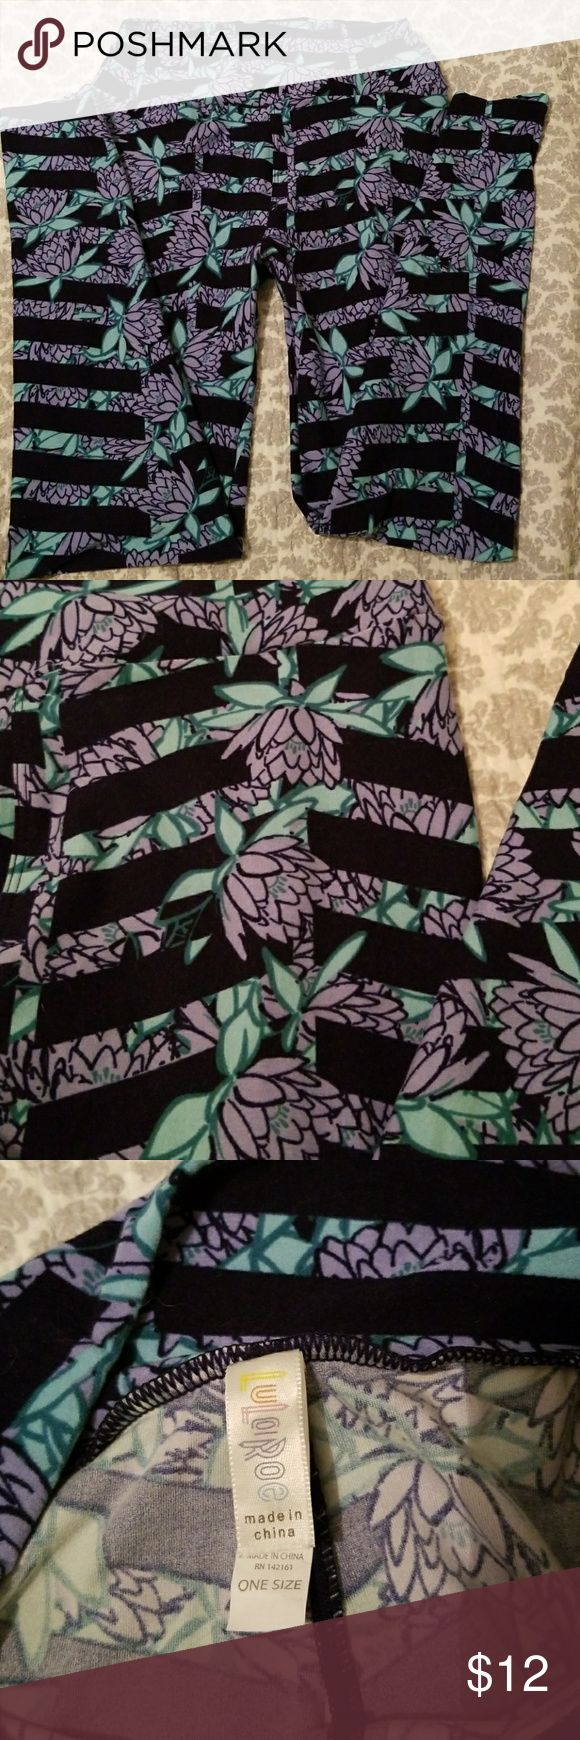 OS Lula Roe Leggings Worn twice! Washed and air dried. Super soft! Periwinkle flowers and navy background LuLaRoe Pants Leggings